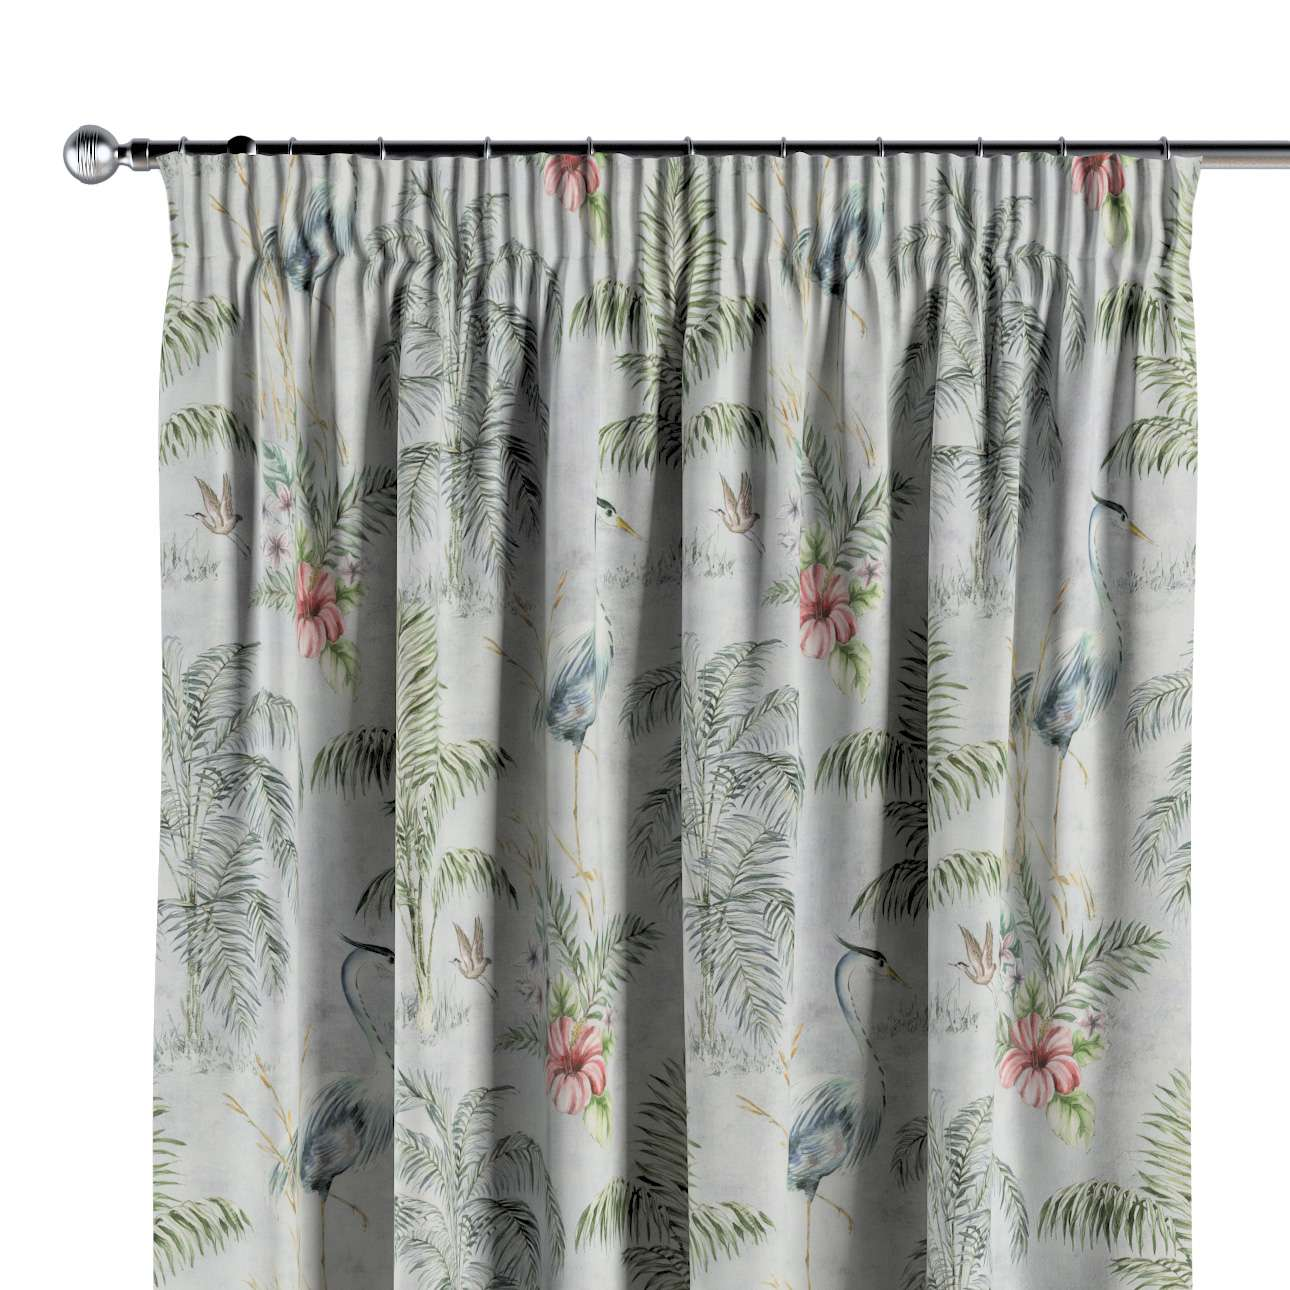 Pencil pleat curtains in collection Tropical Island, fabric: 142-58